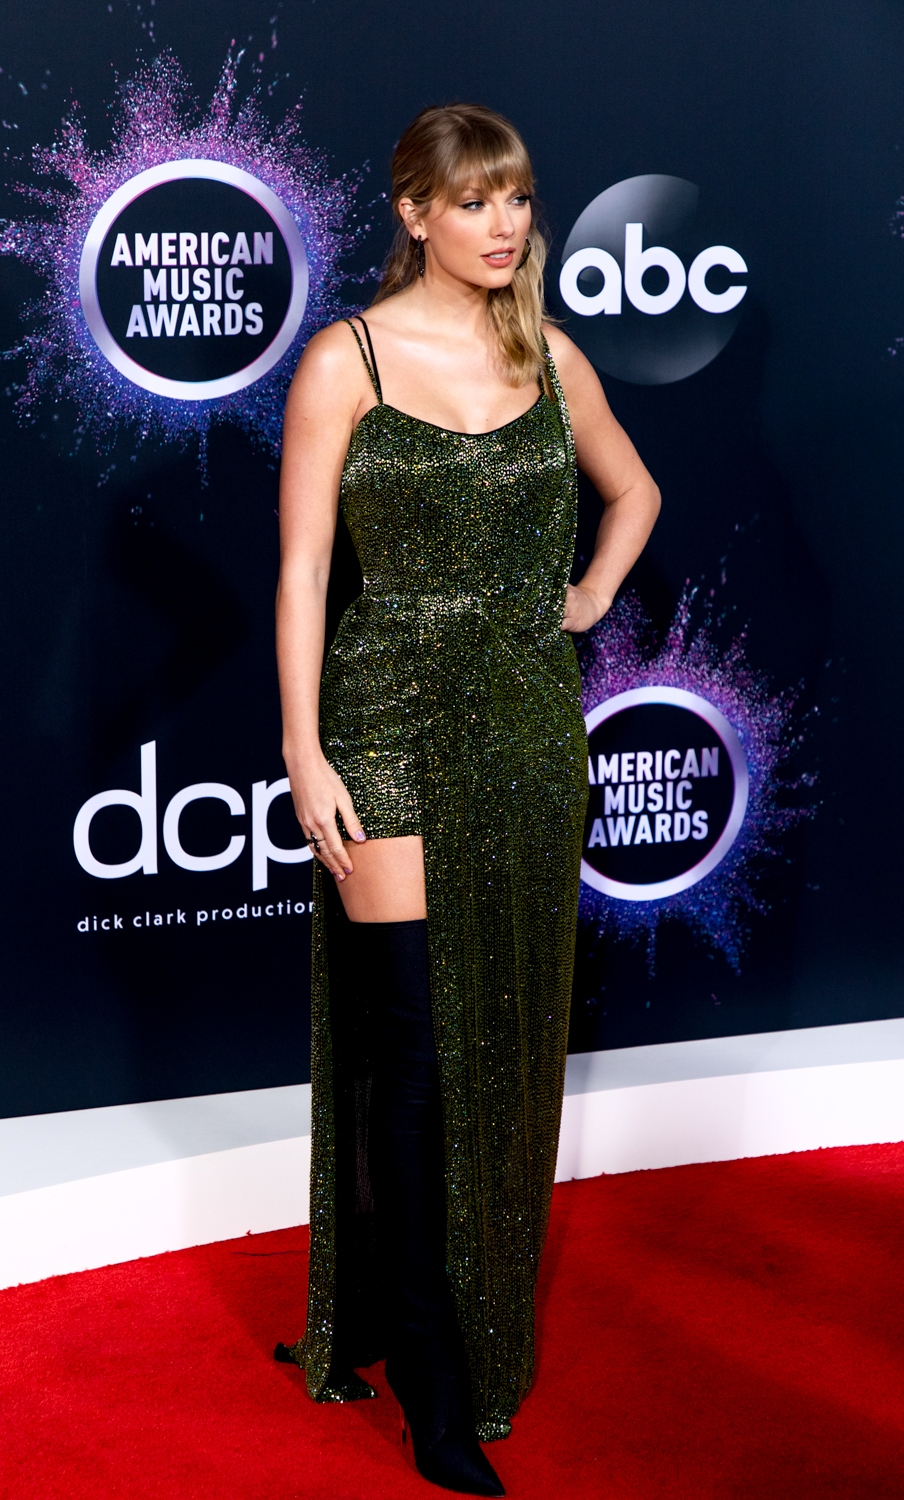 Gallery The 2019 American Music Awards Daily Bruin